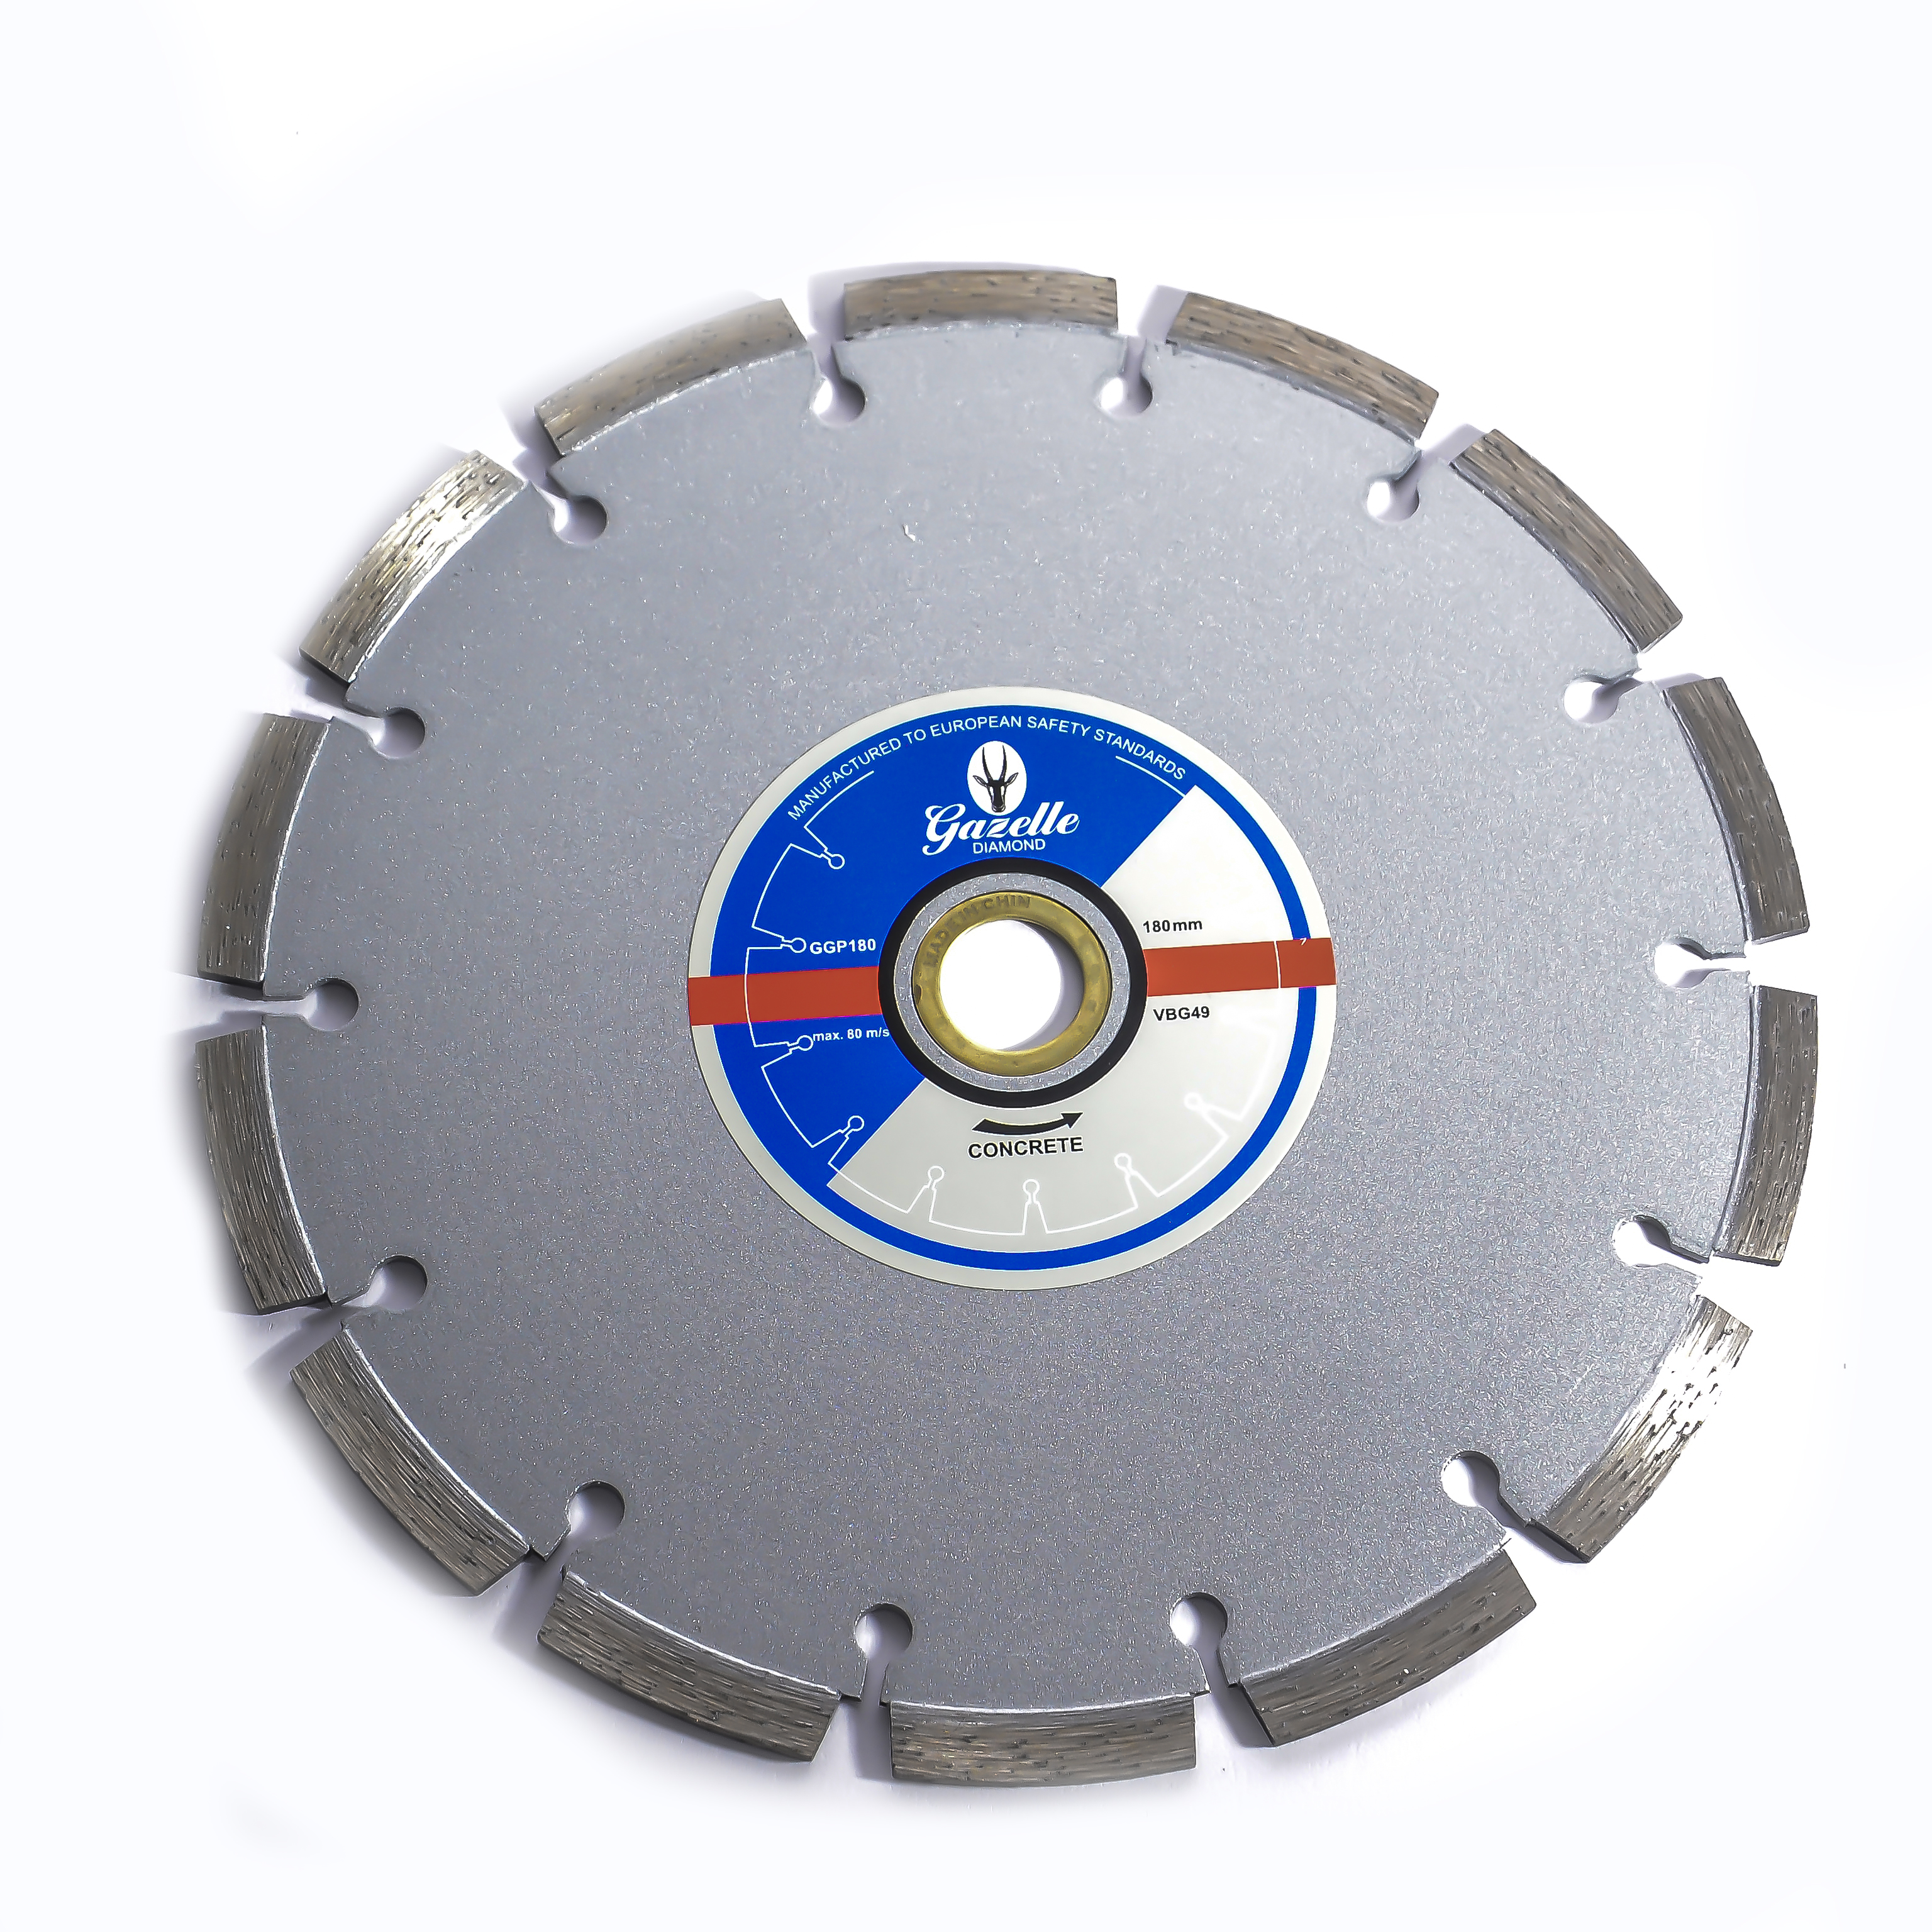 GAZELLE GGP180 - Concrete Cutting Blades 180mm